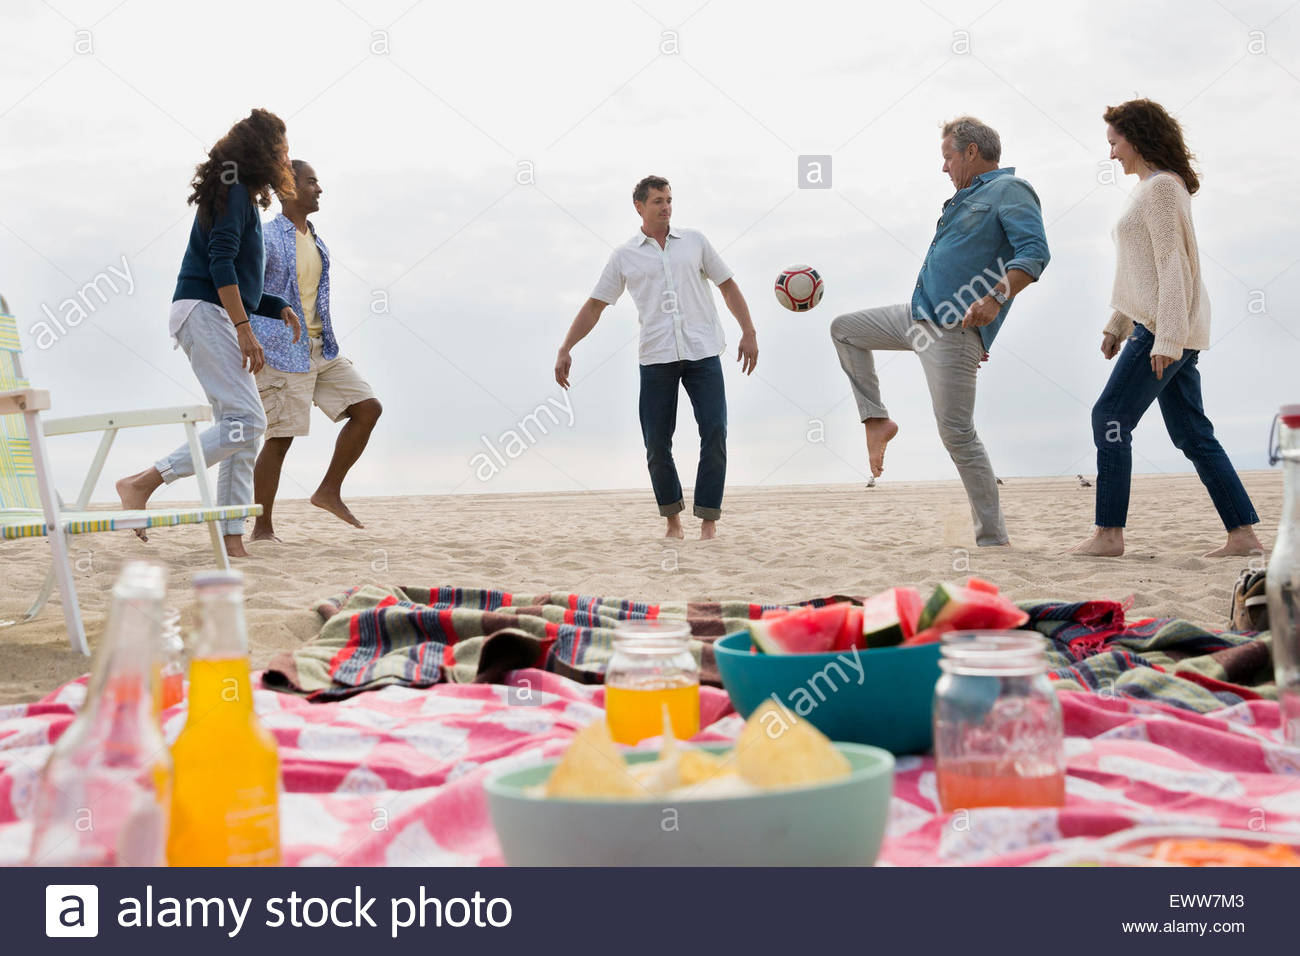 Friends playing soccer near beach picnic - Stock Image